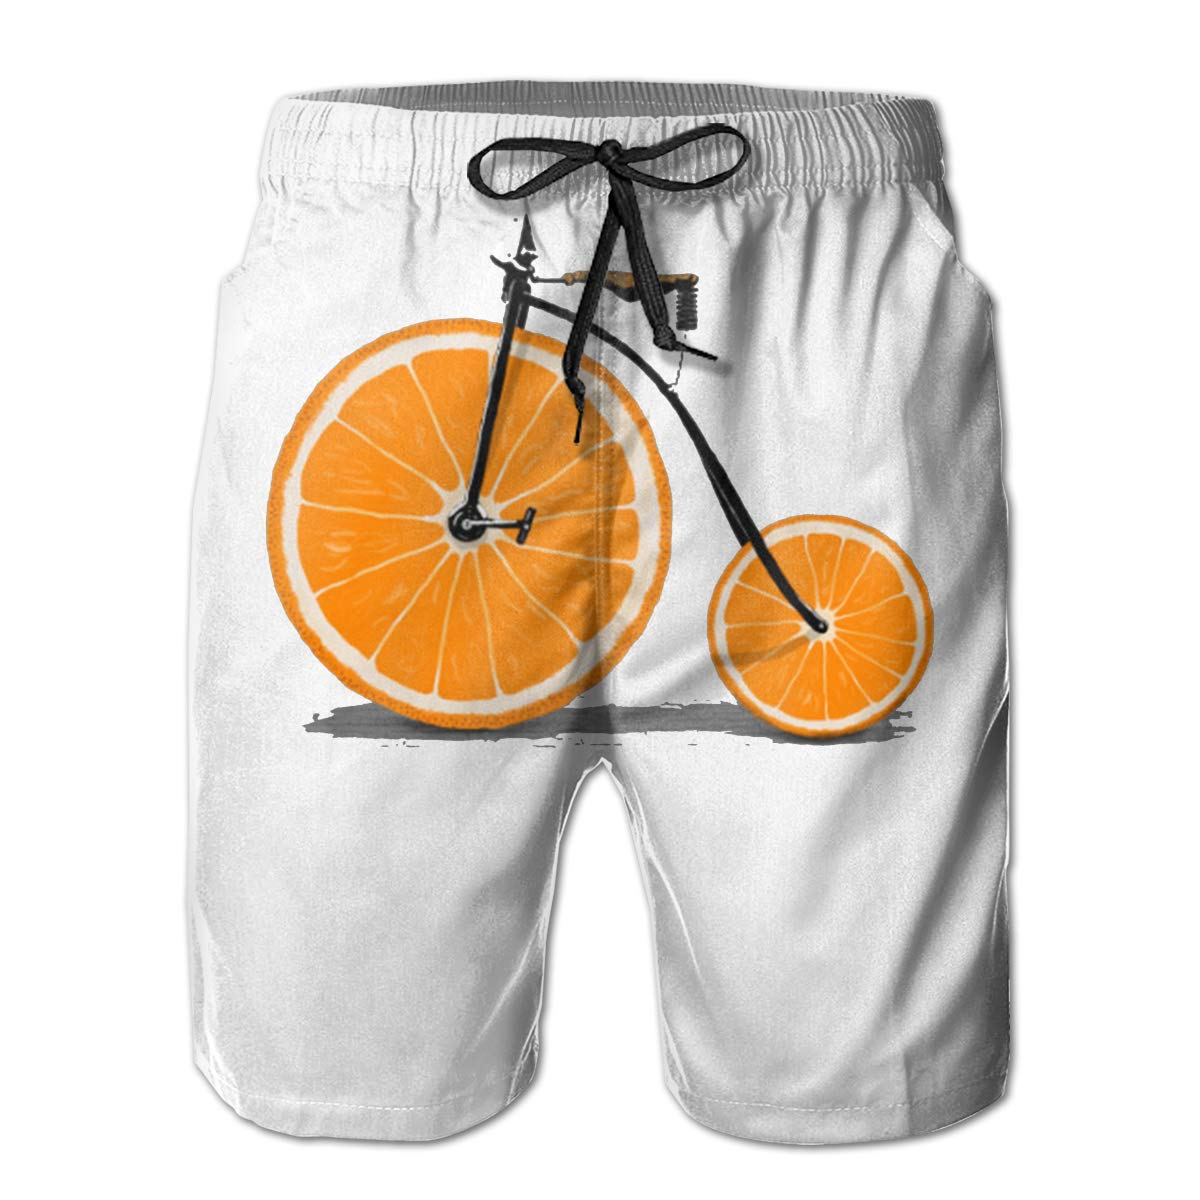 You Know And Good Vitamin Mens Swim Trunks Bathing Suit Beach Shorts